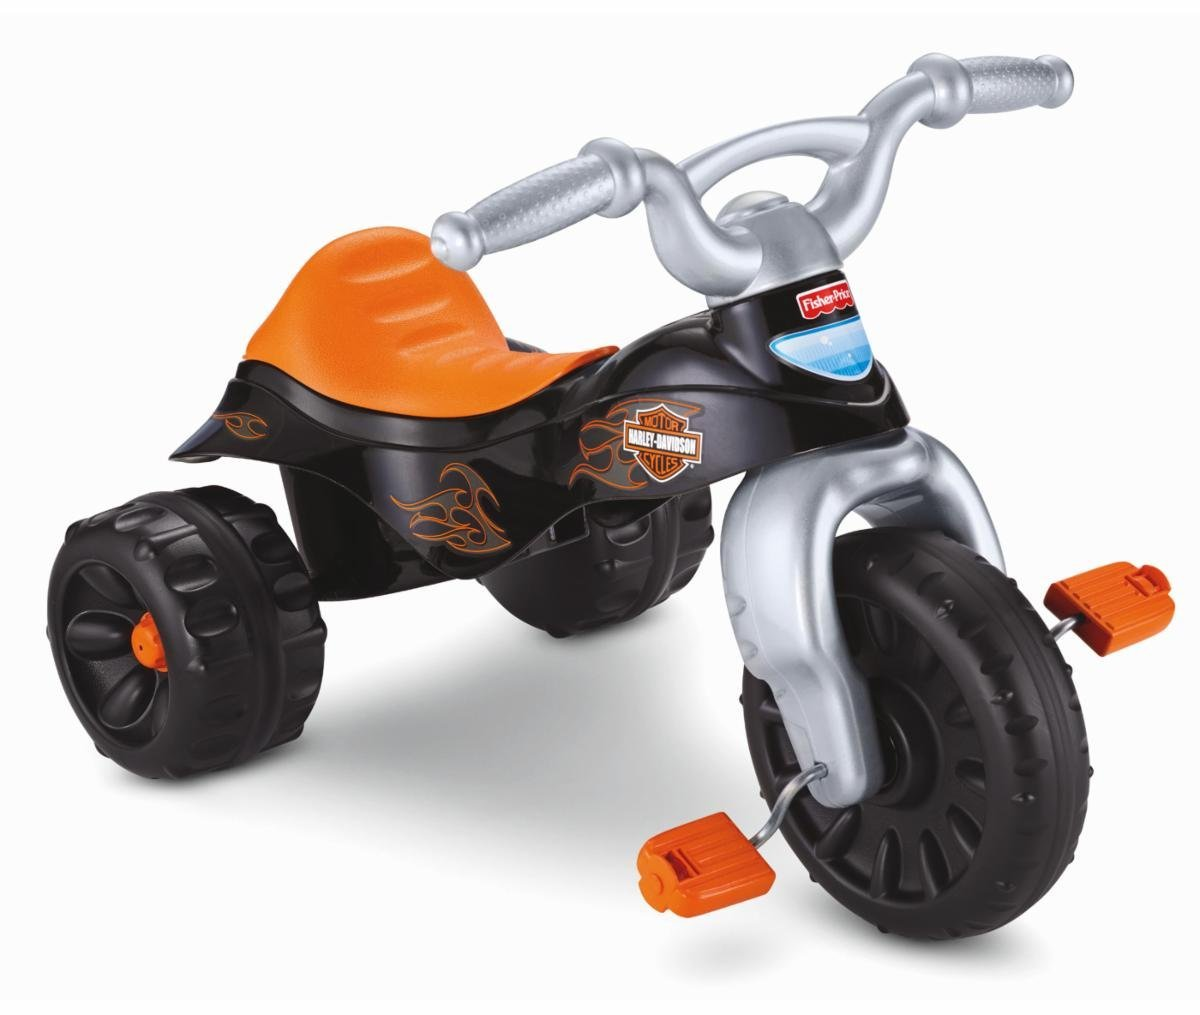 Fisher-Price Harley-Davidson Tough Trike (Photo: Business Wire)